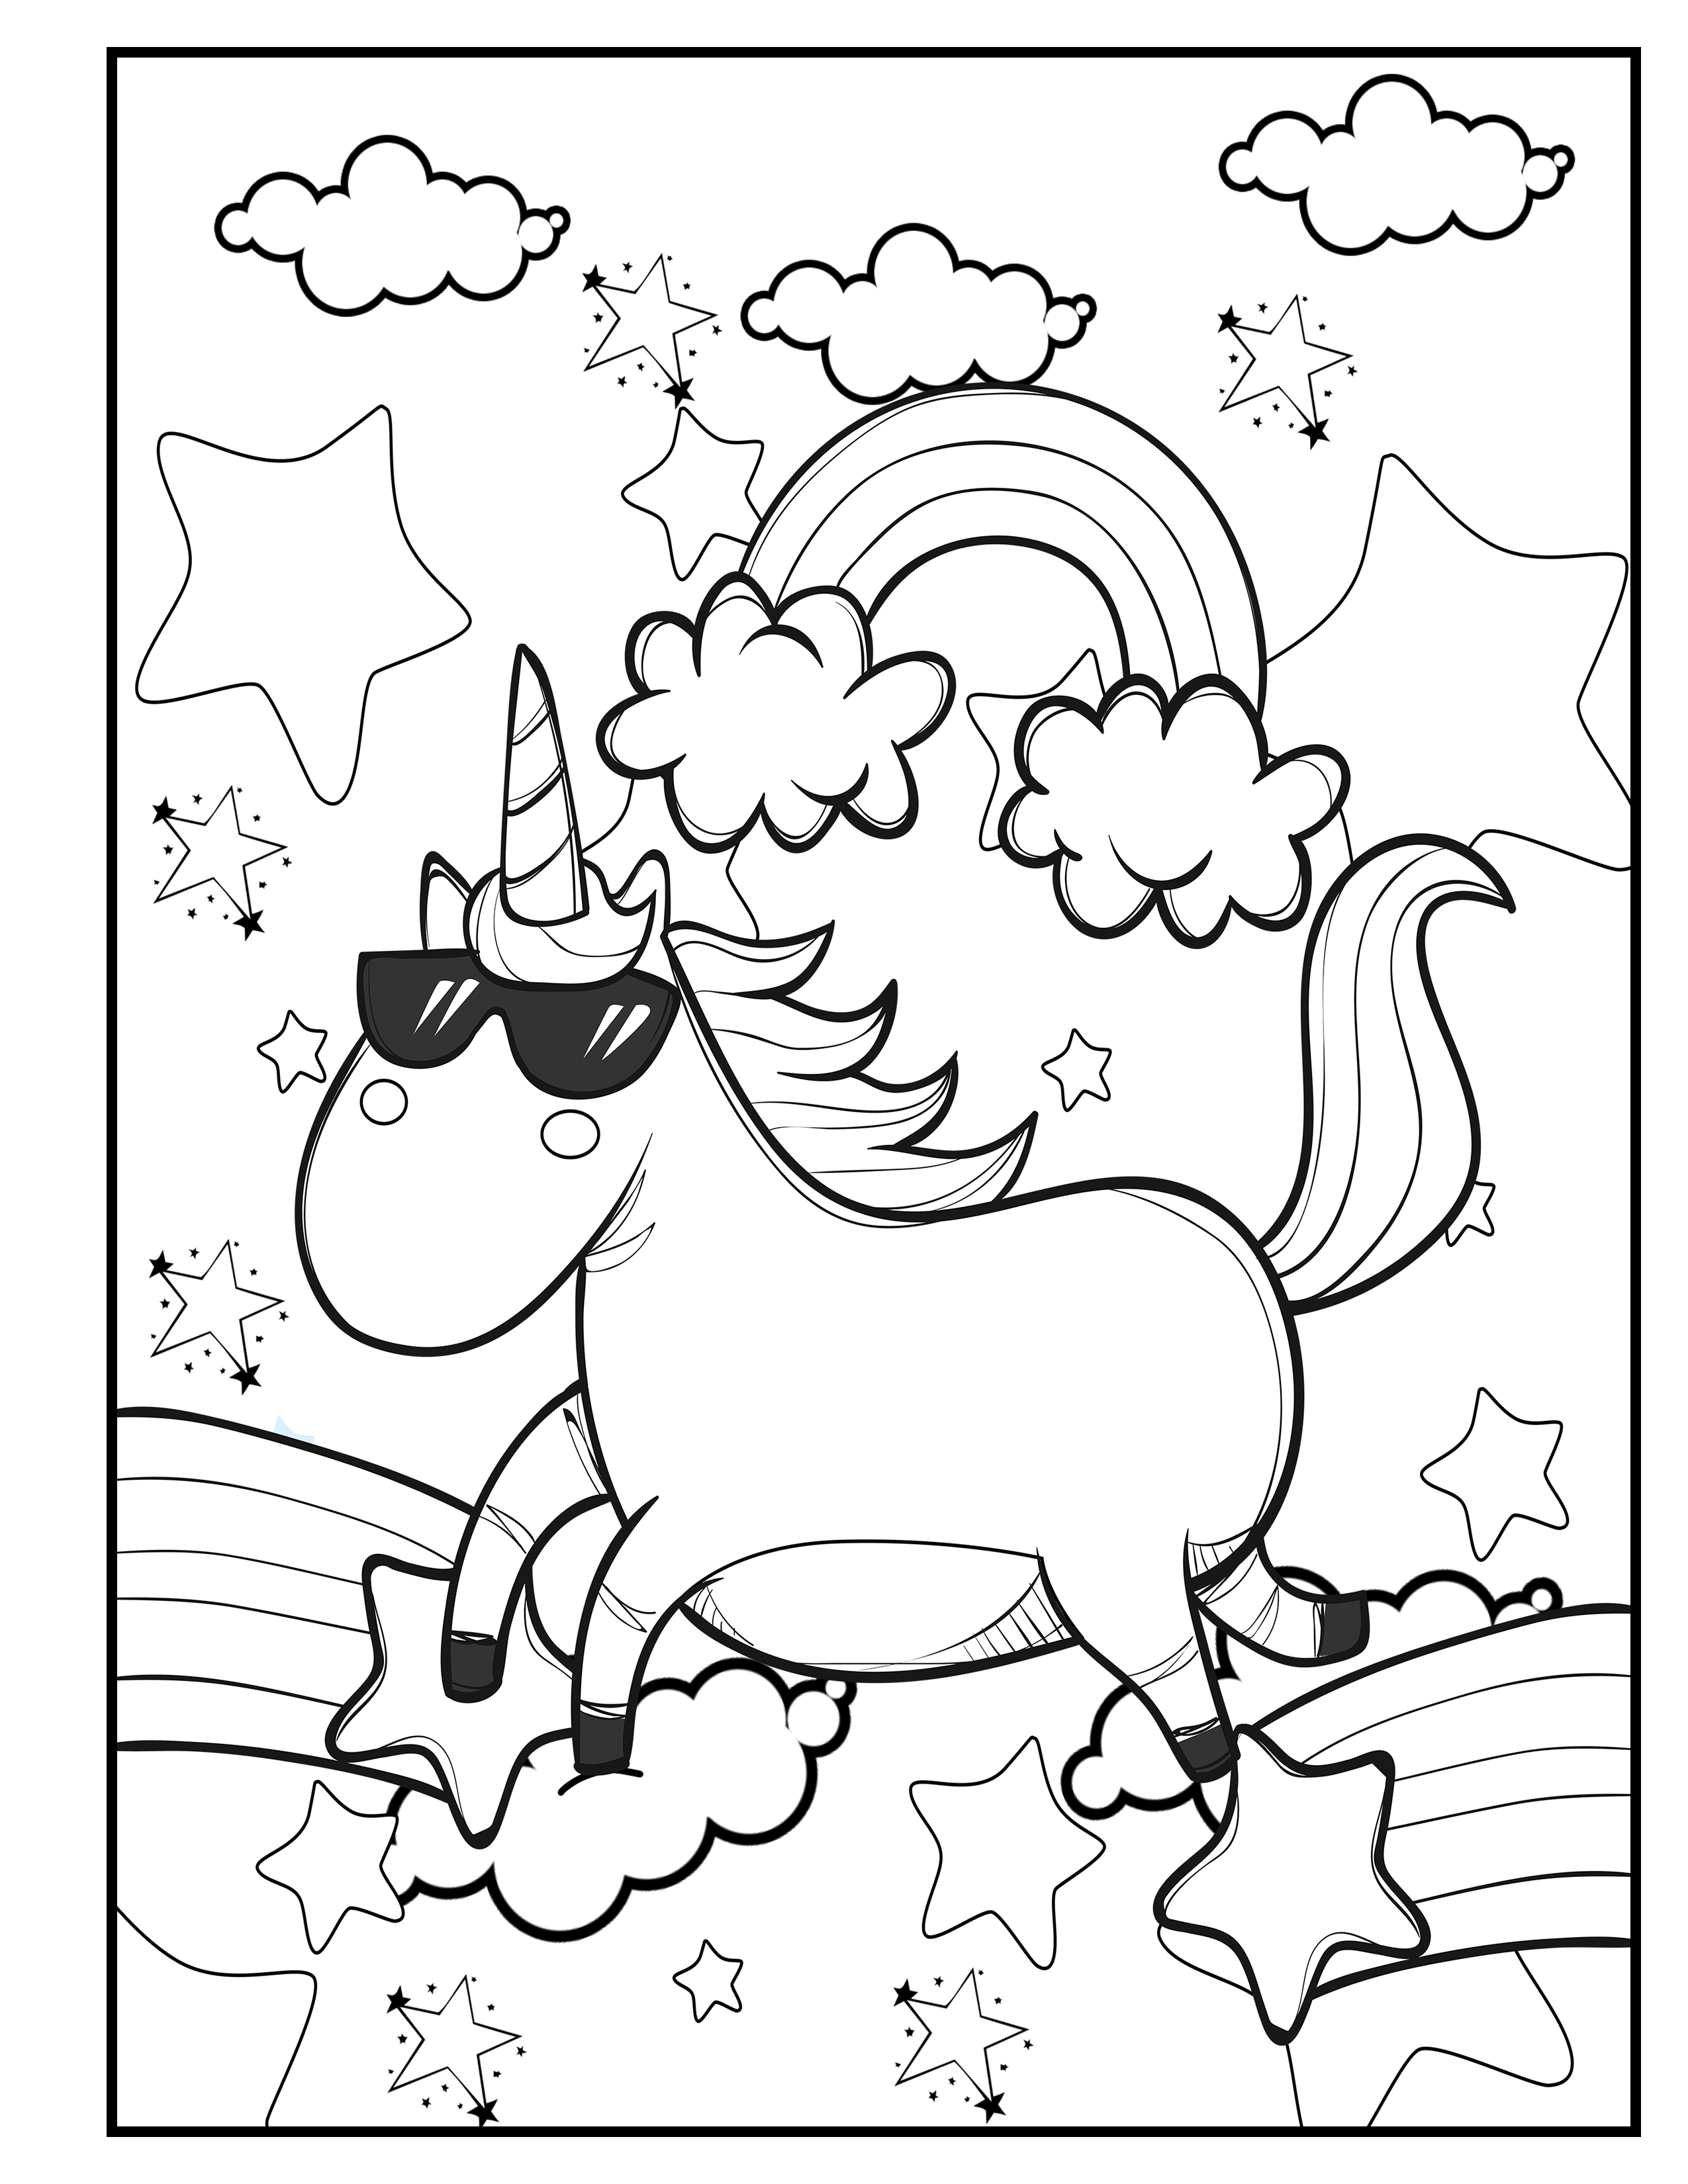 unicorn coloring pages for 9 year olds set 1 10 unicorn coloring pages printable unicorn etsy year pages coloring olds unicorn for 9